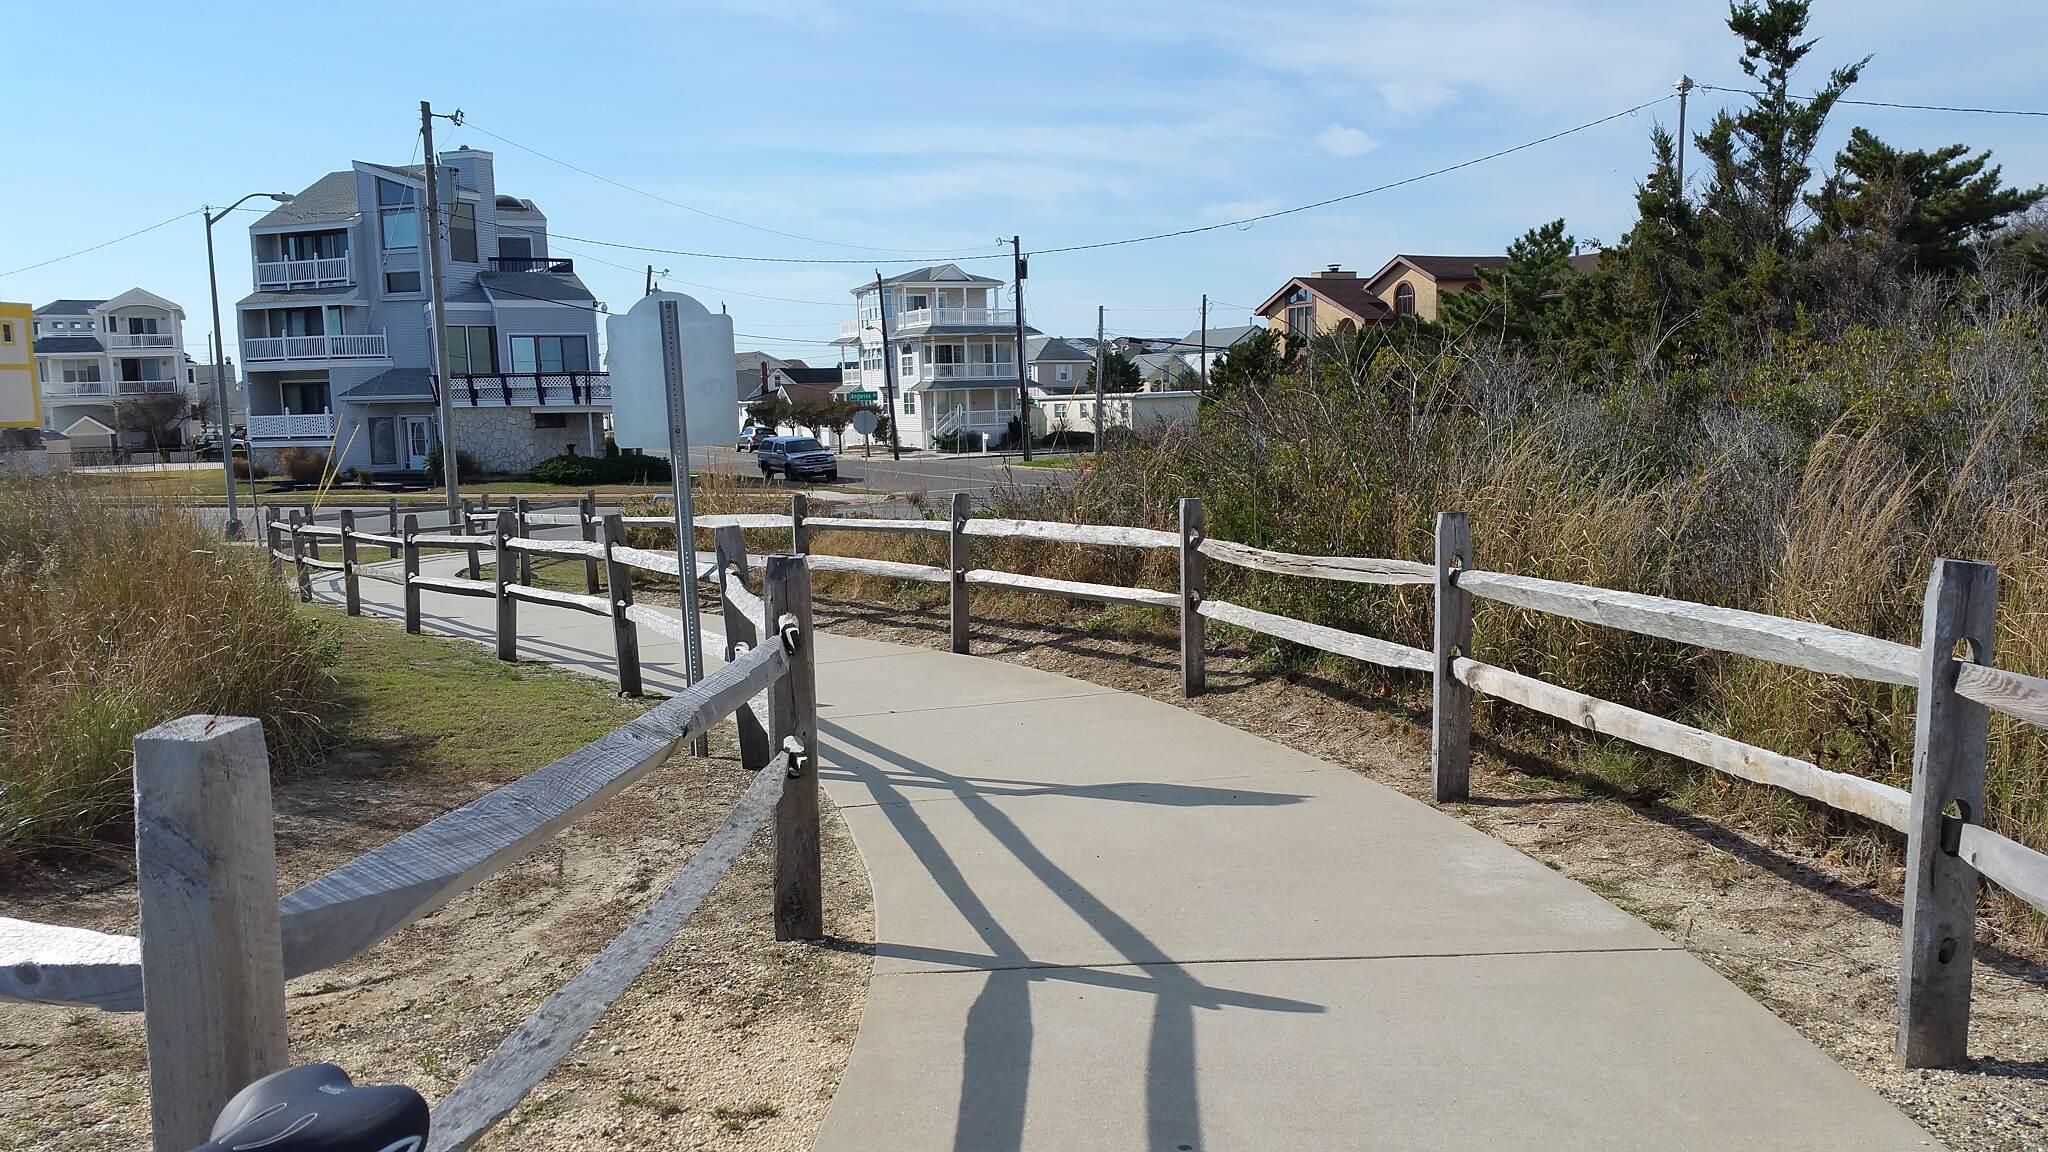 North Wildwood Seawall Trail  A Pathway To The Seawall  A nice shot of access path to the seawall. Location, just off Anglesea Dr.